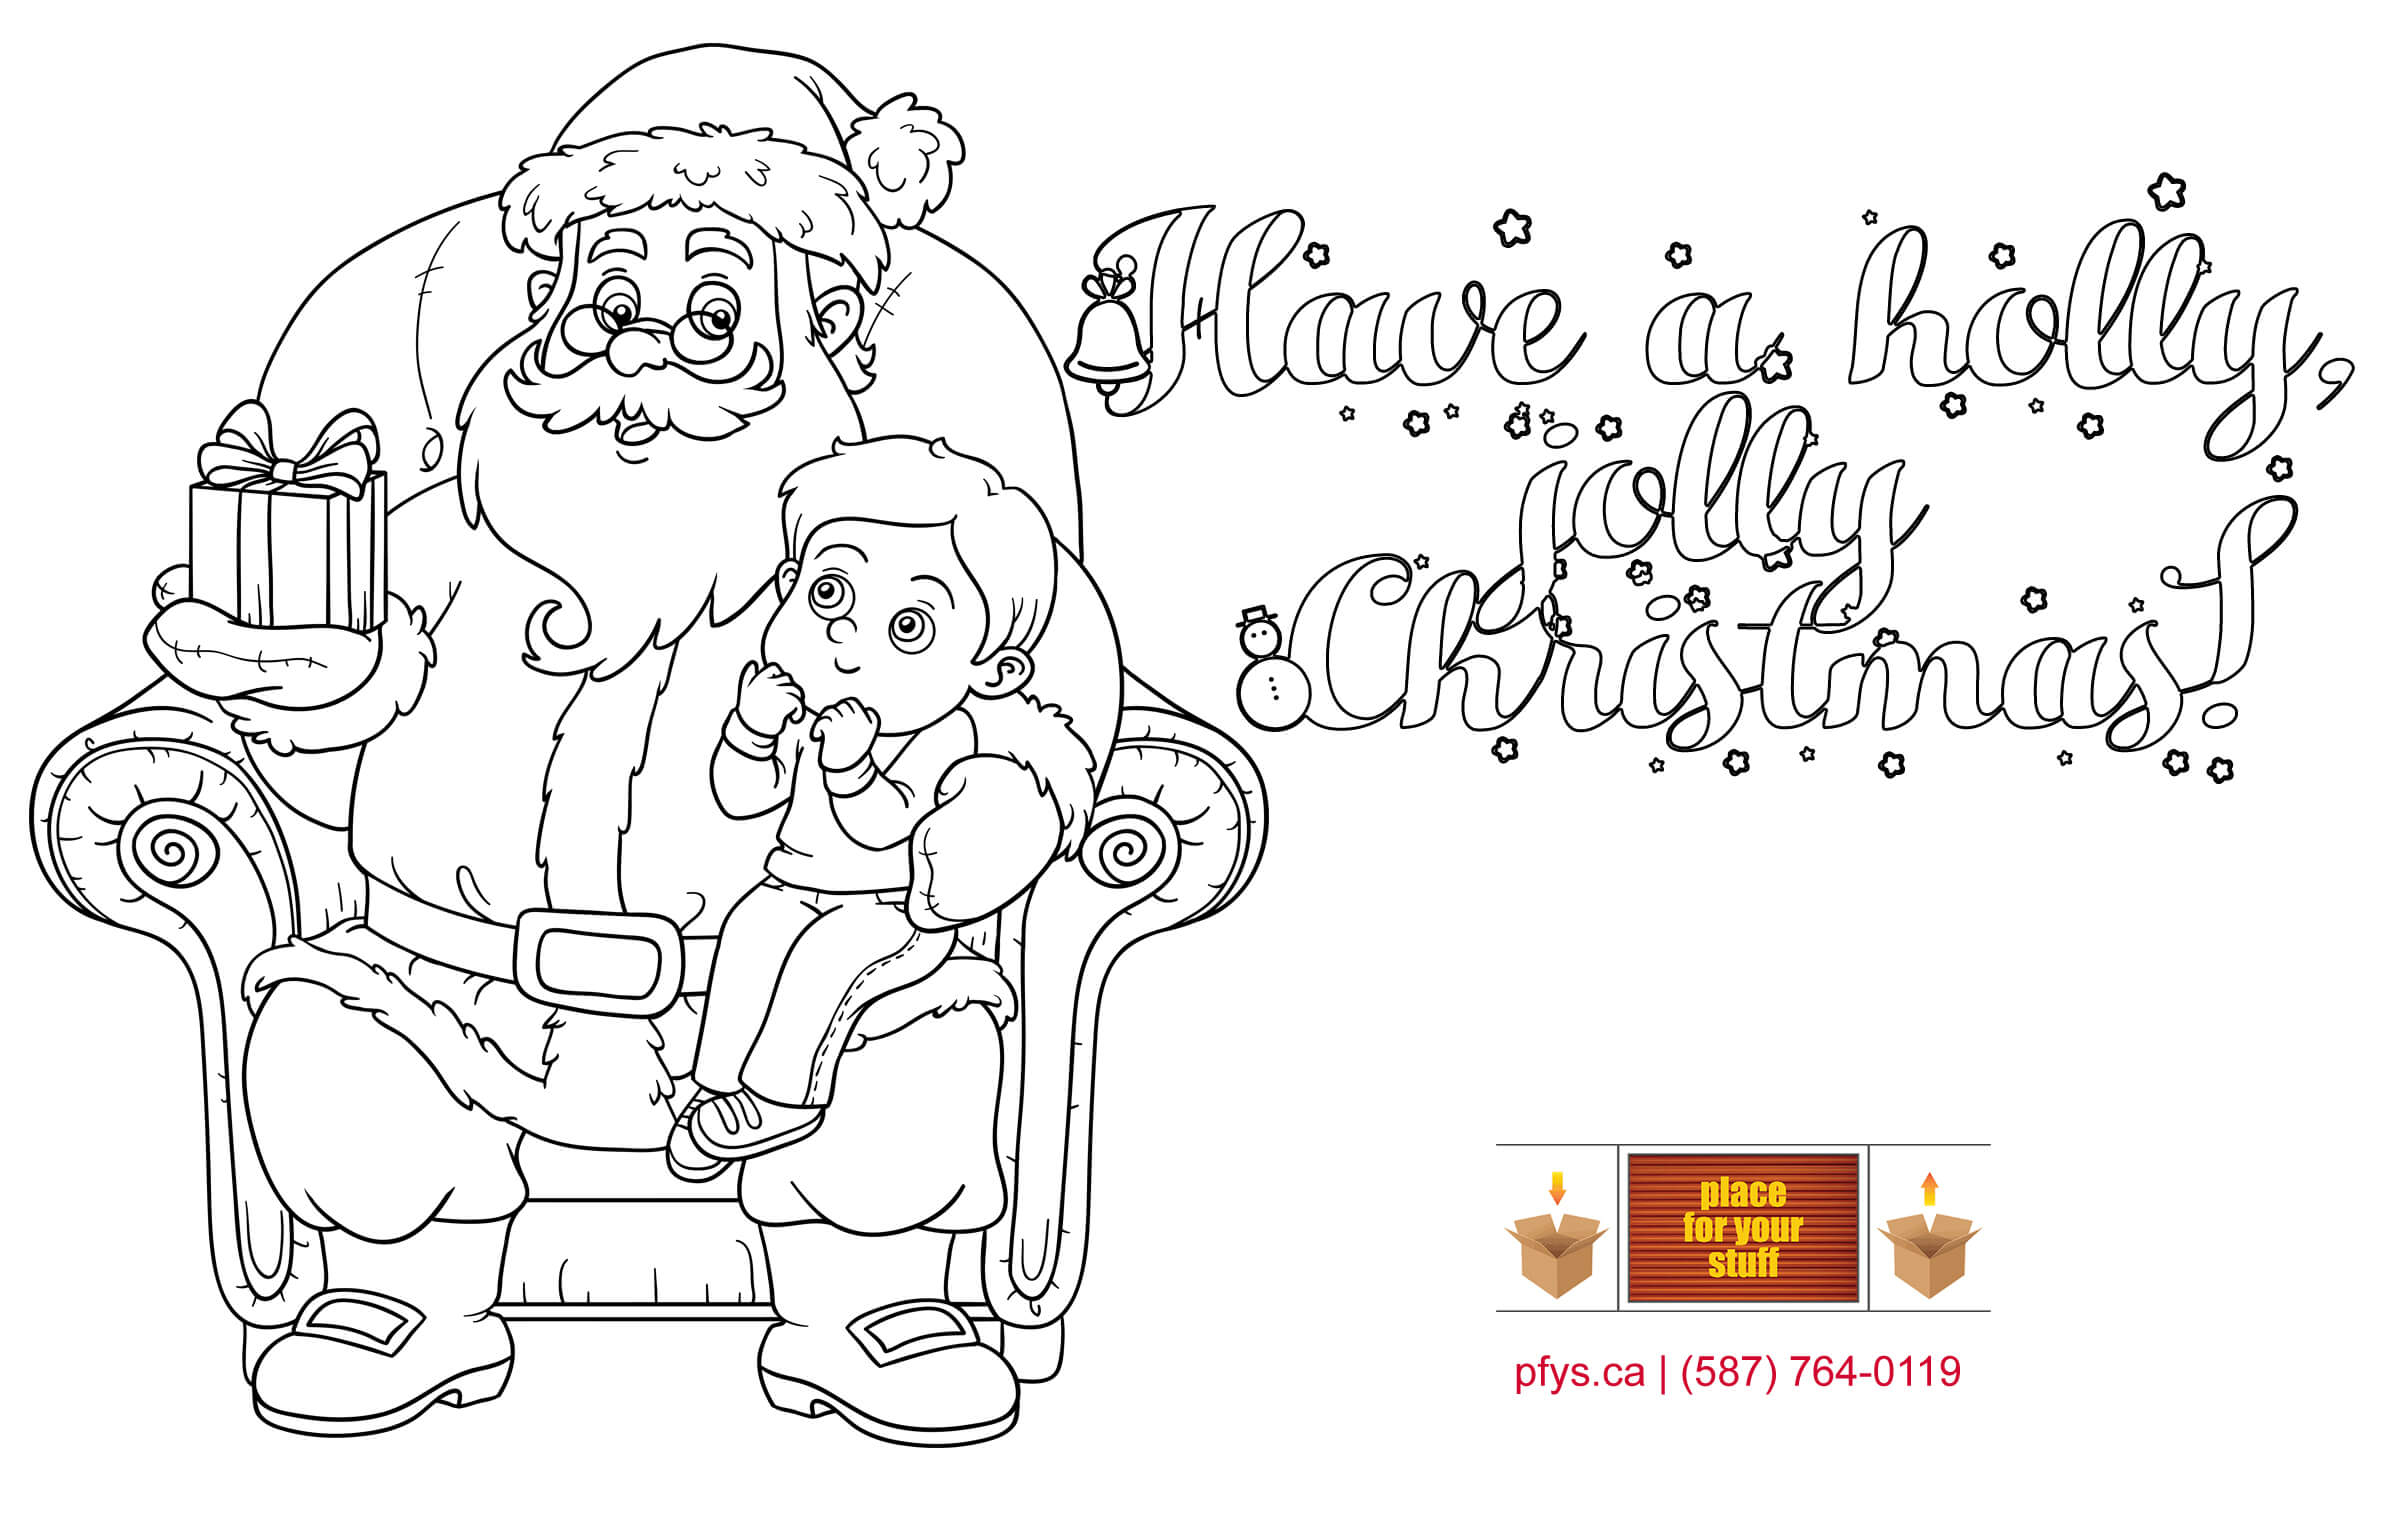 Place For Your Stuff's  Christmas coloring test2.